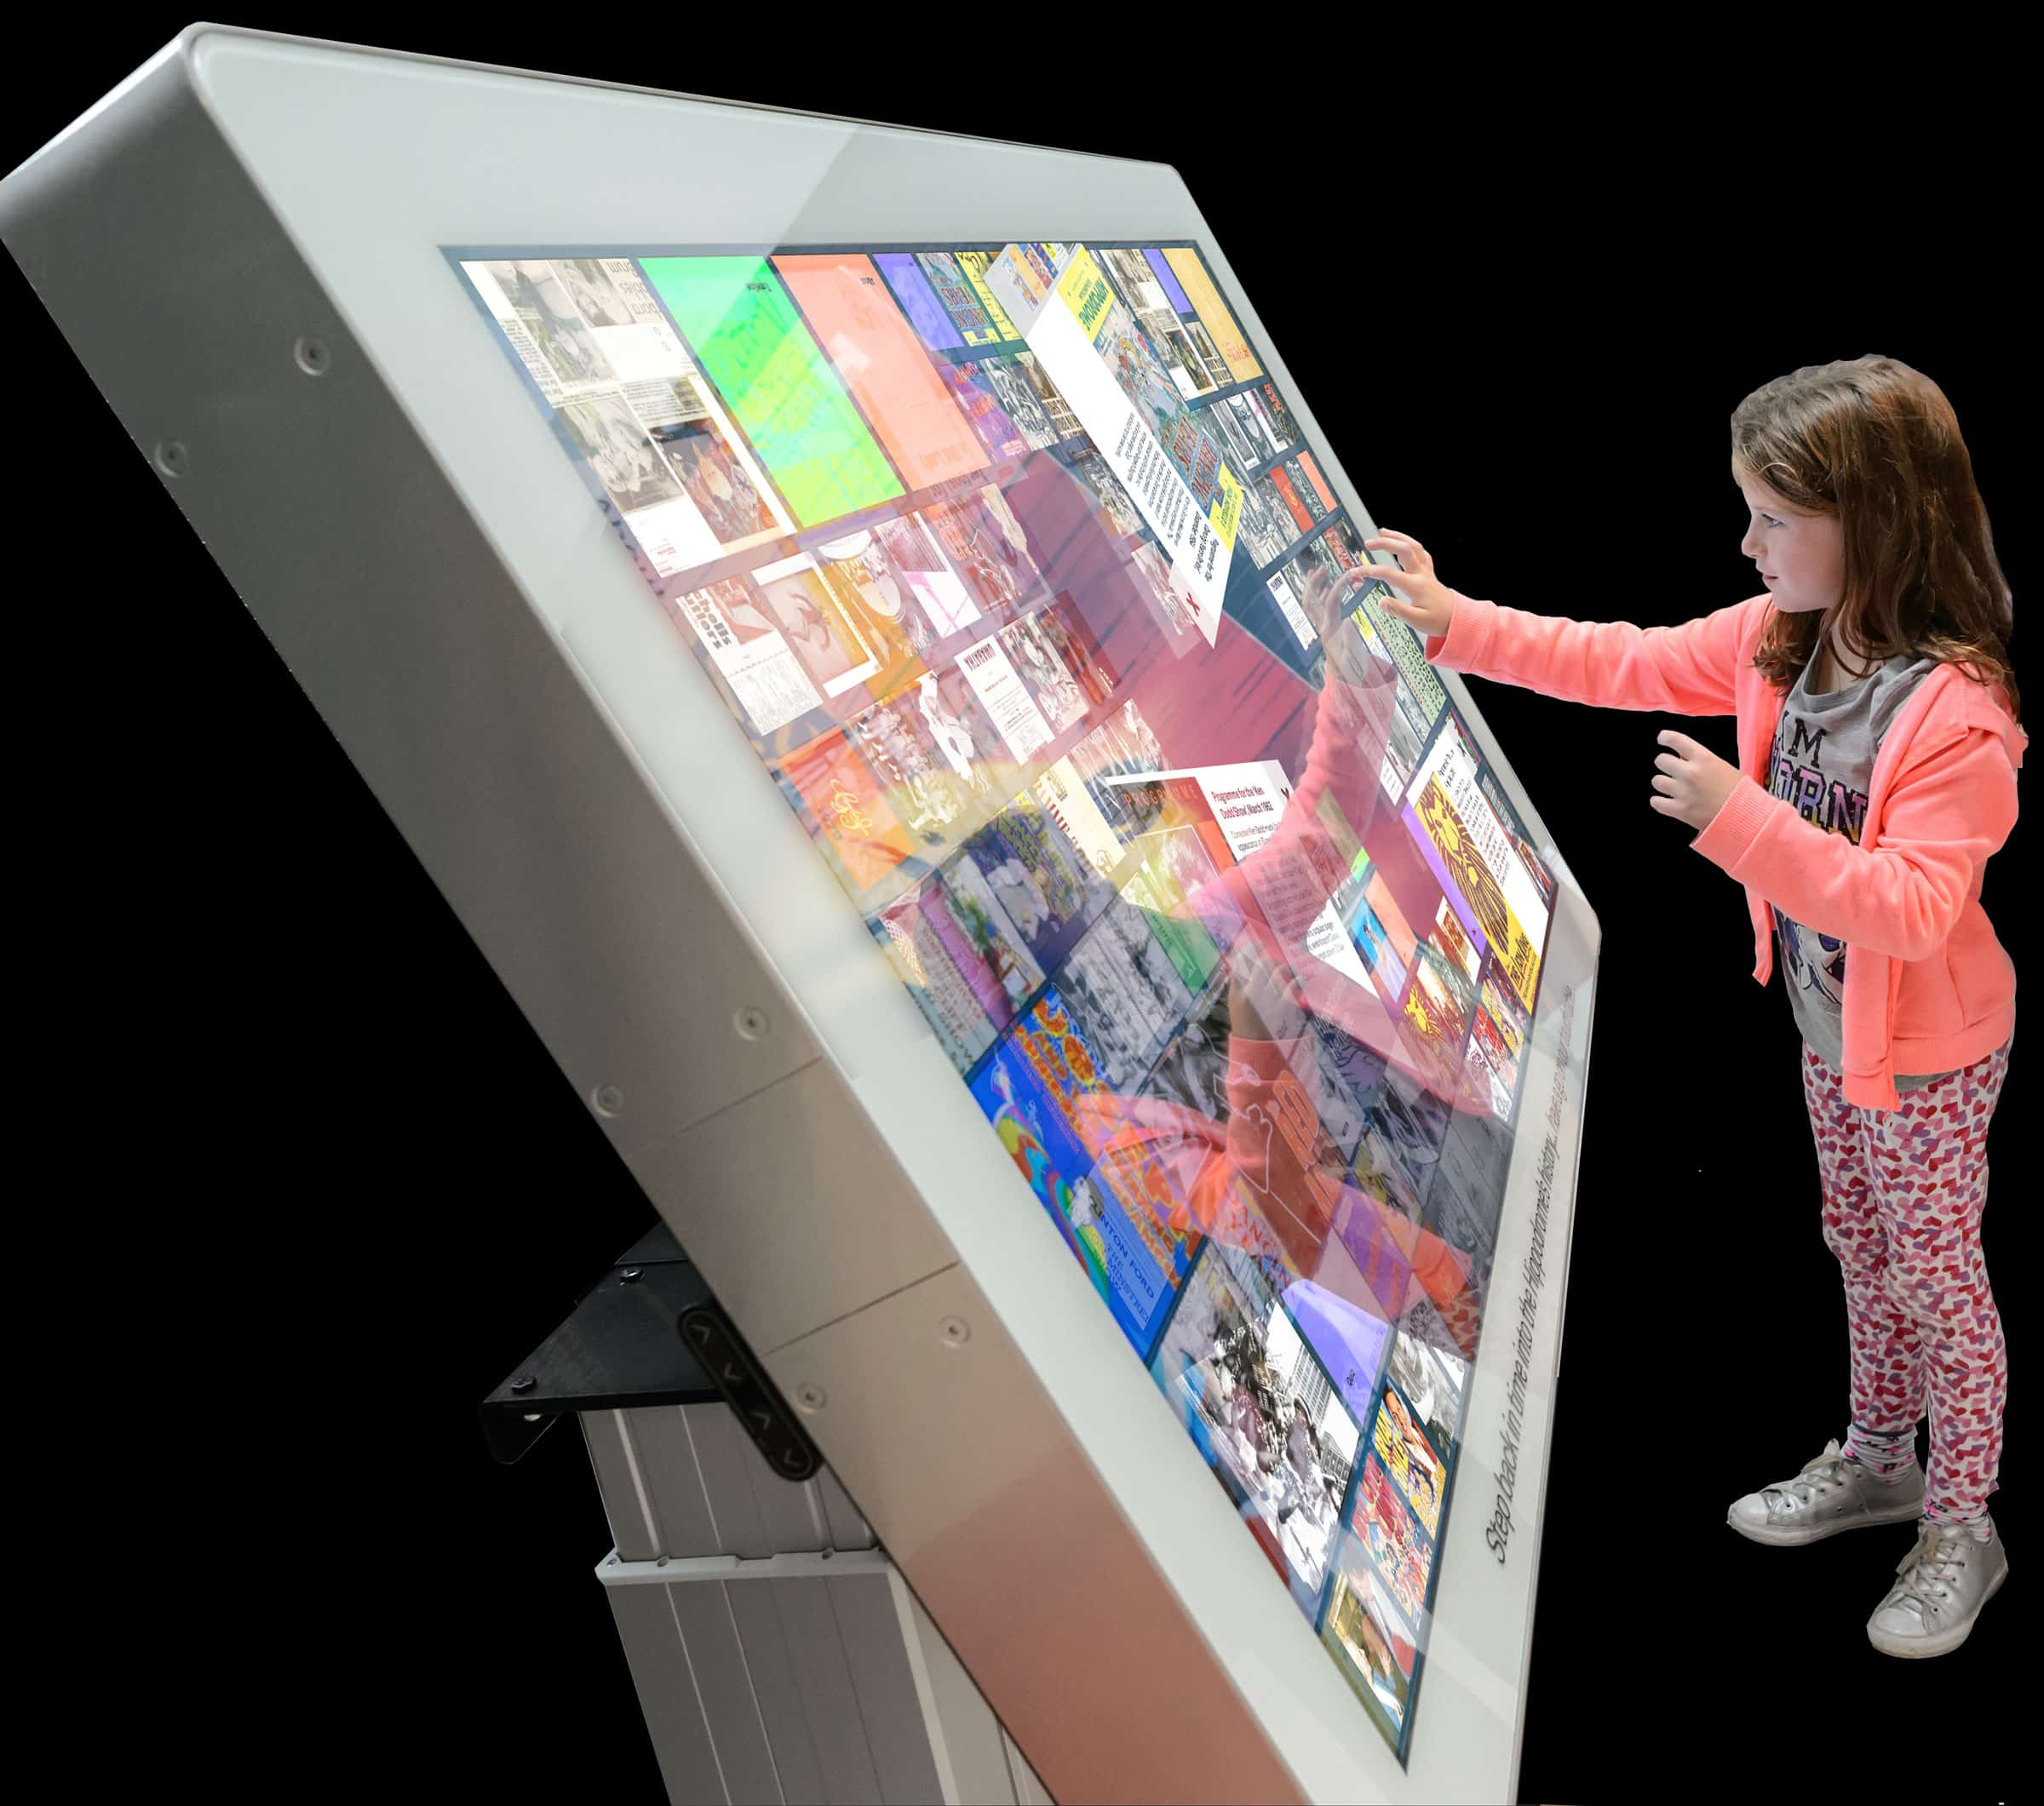 A girl uses the touch table in tilted position at Birmingham Hippodrome